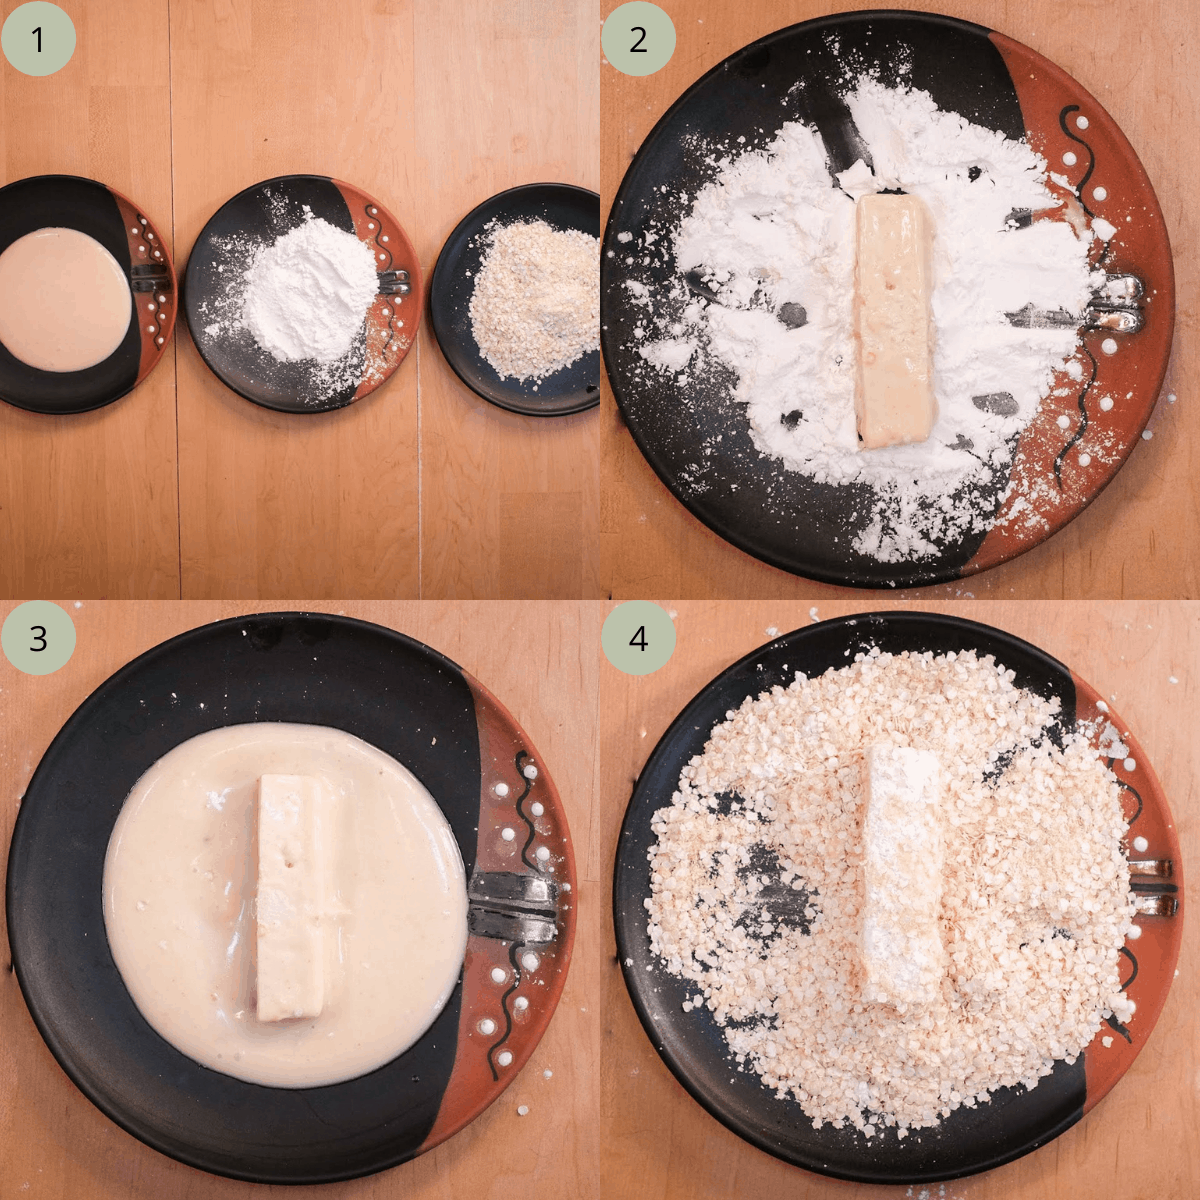 Step by step directions for coating tofu.